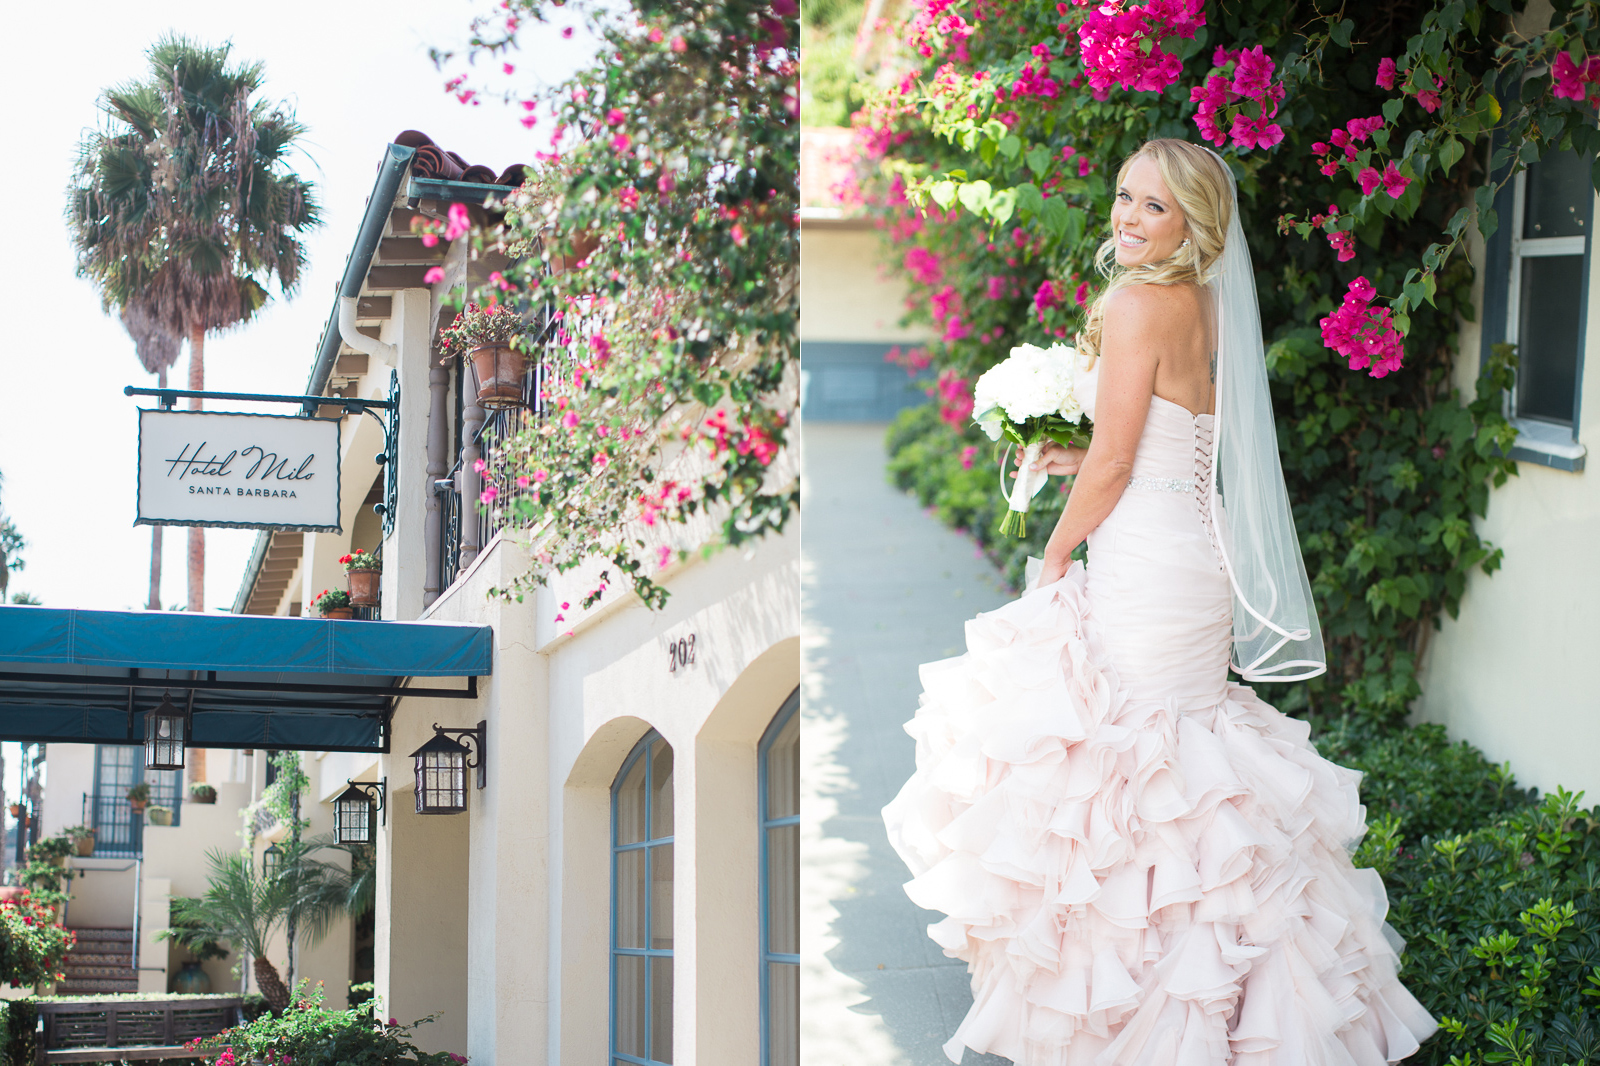 Bride and her bouquet on her wedding day at Hotel Milo in Santa Barbara